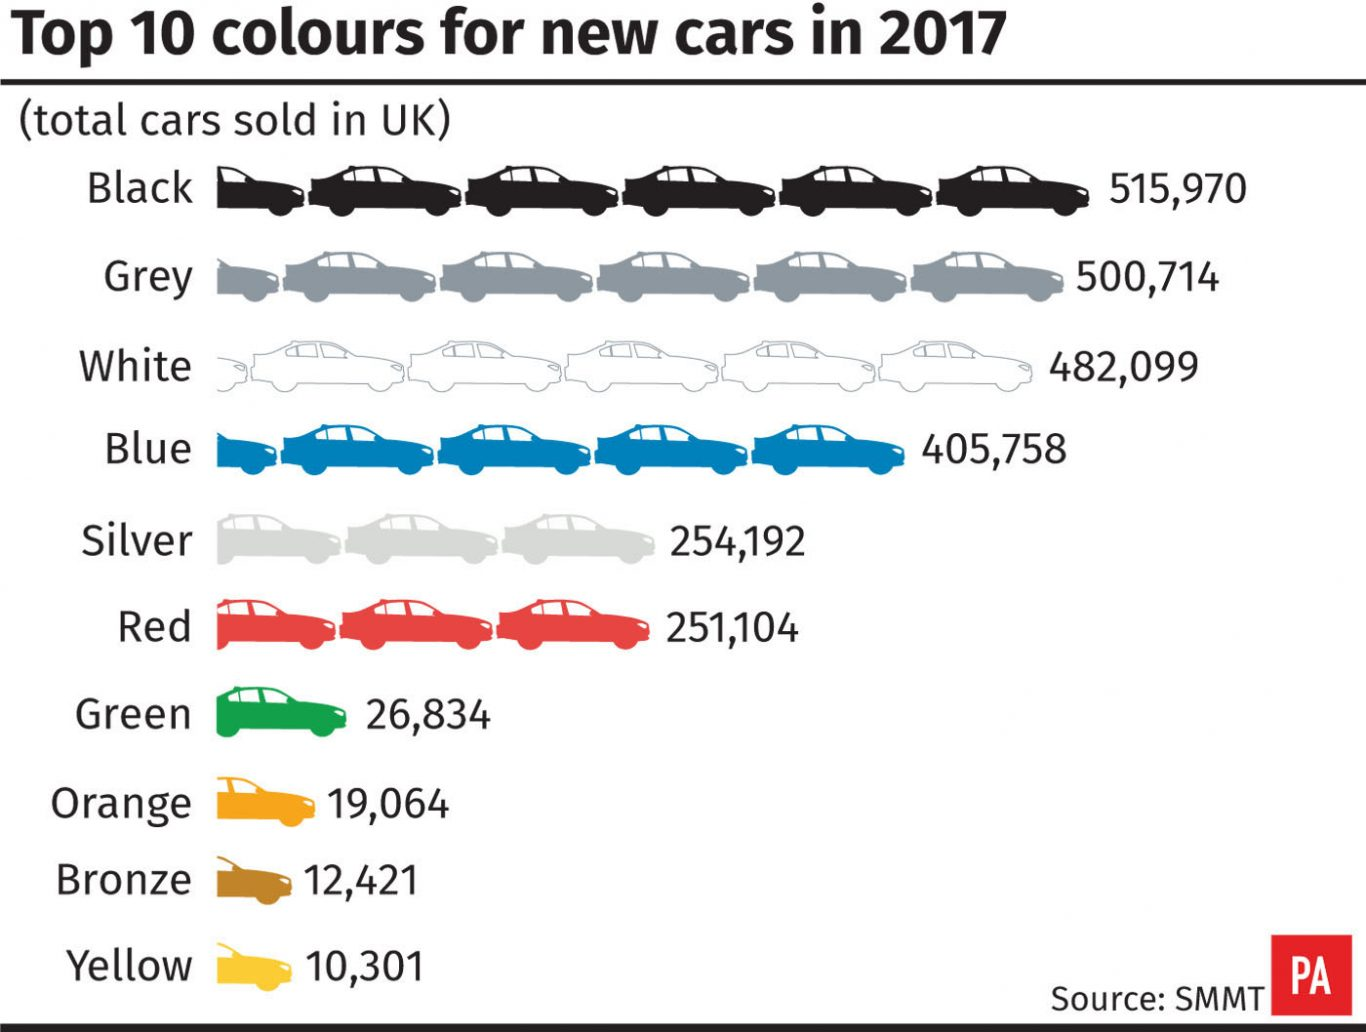 Black is Back as the Most Popular New Car Color for Brits